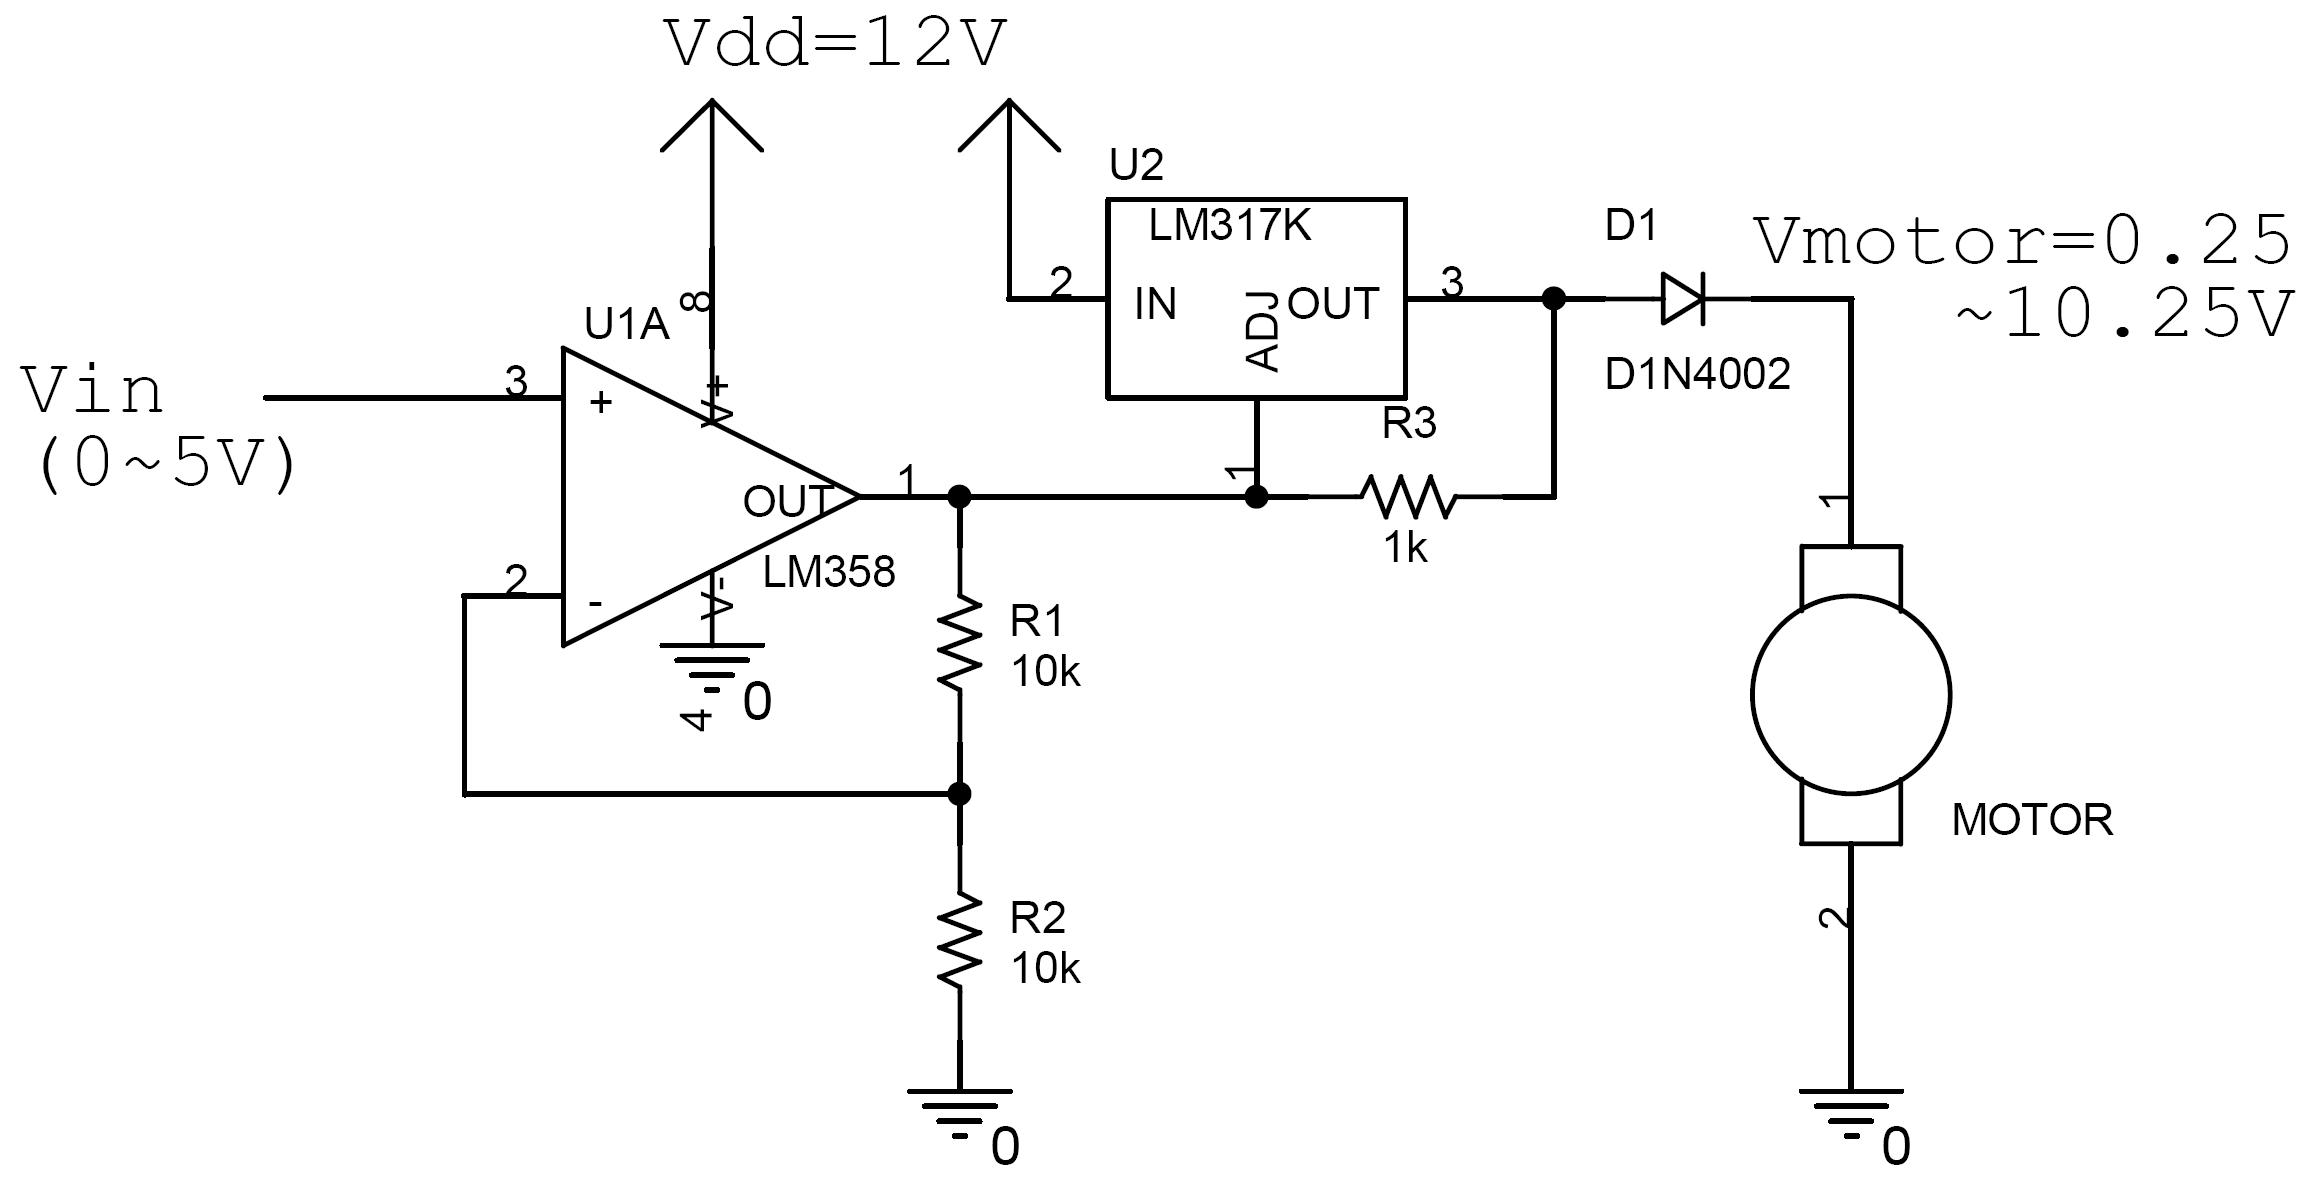 ac motor speed controller circuit diagram cat6 wall plate wiring schematic lm317 43 lm358